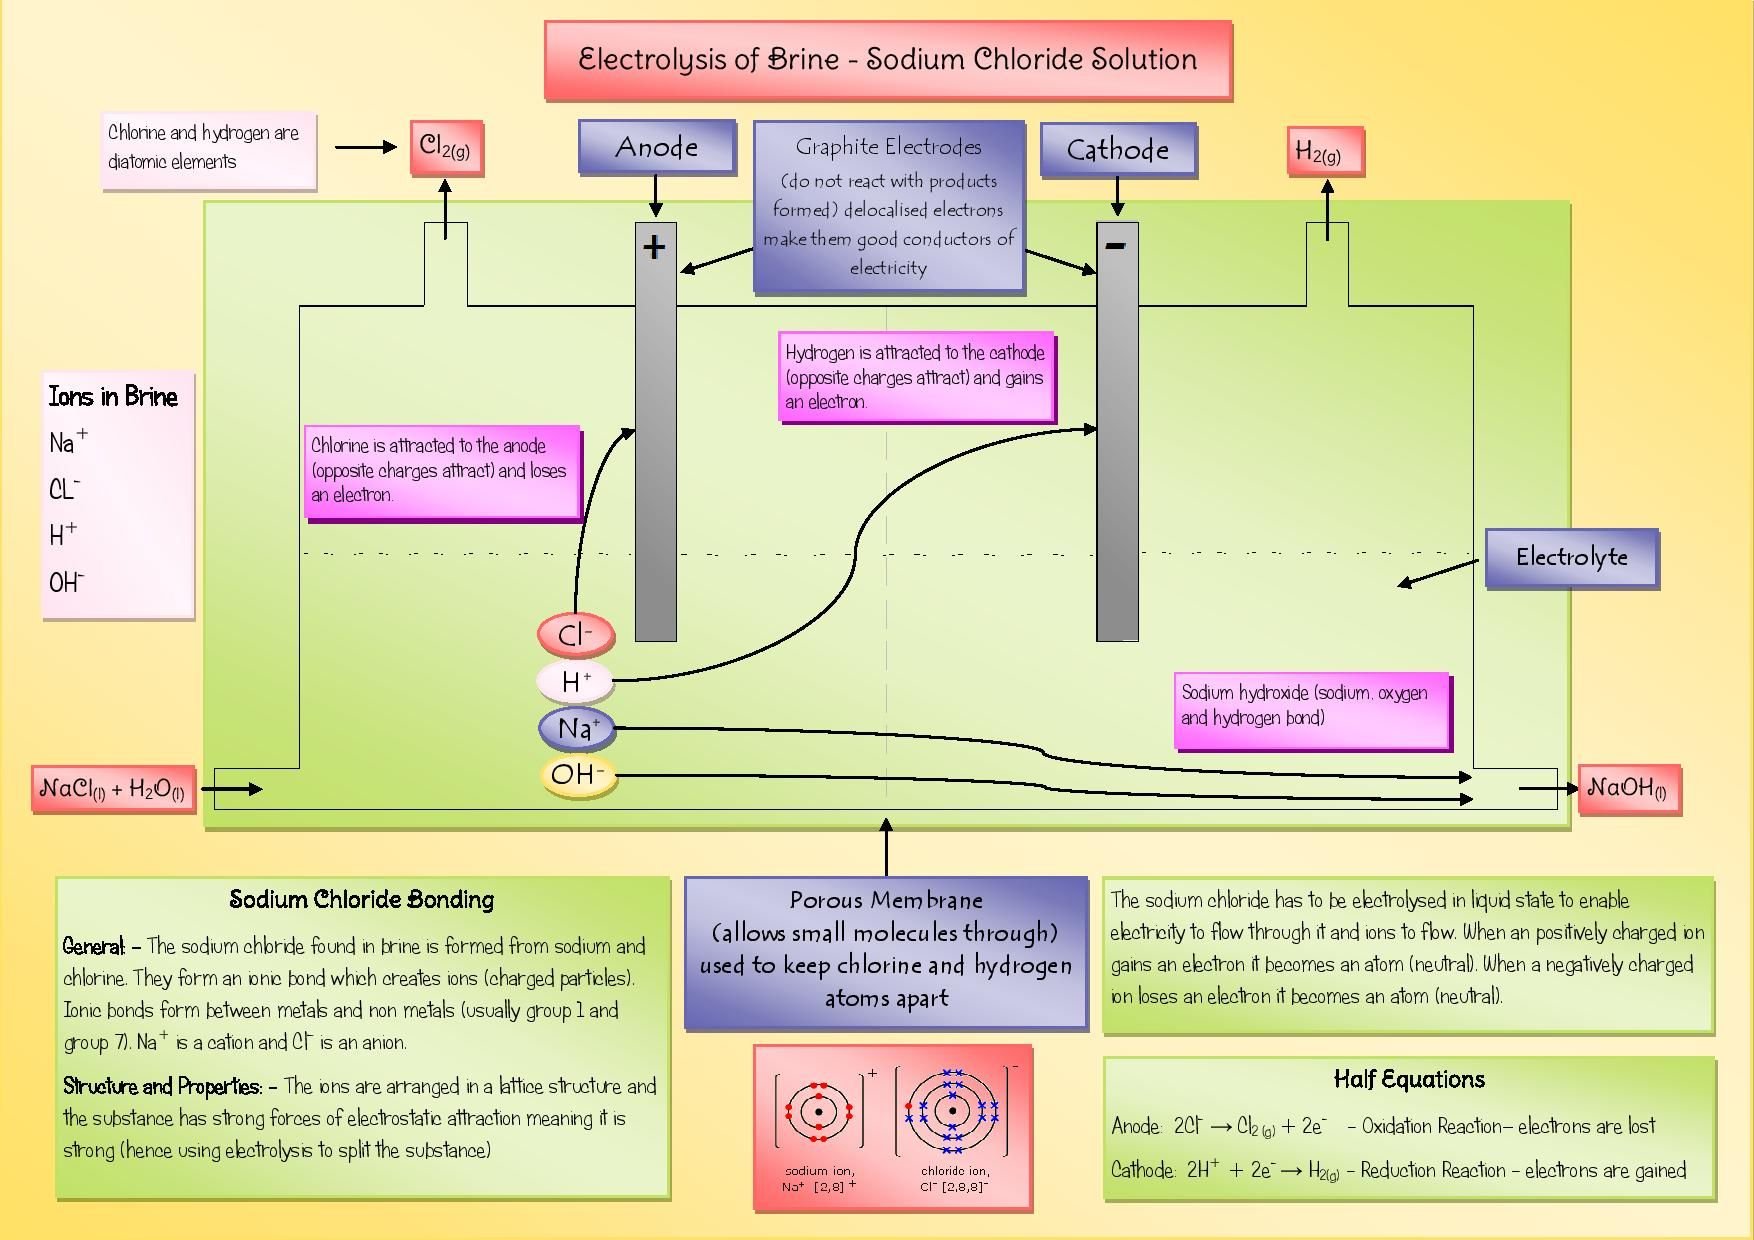 Poster explaining the process of the electrolysis of sodium chloride